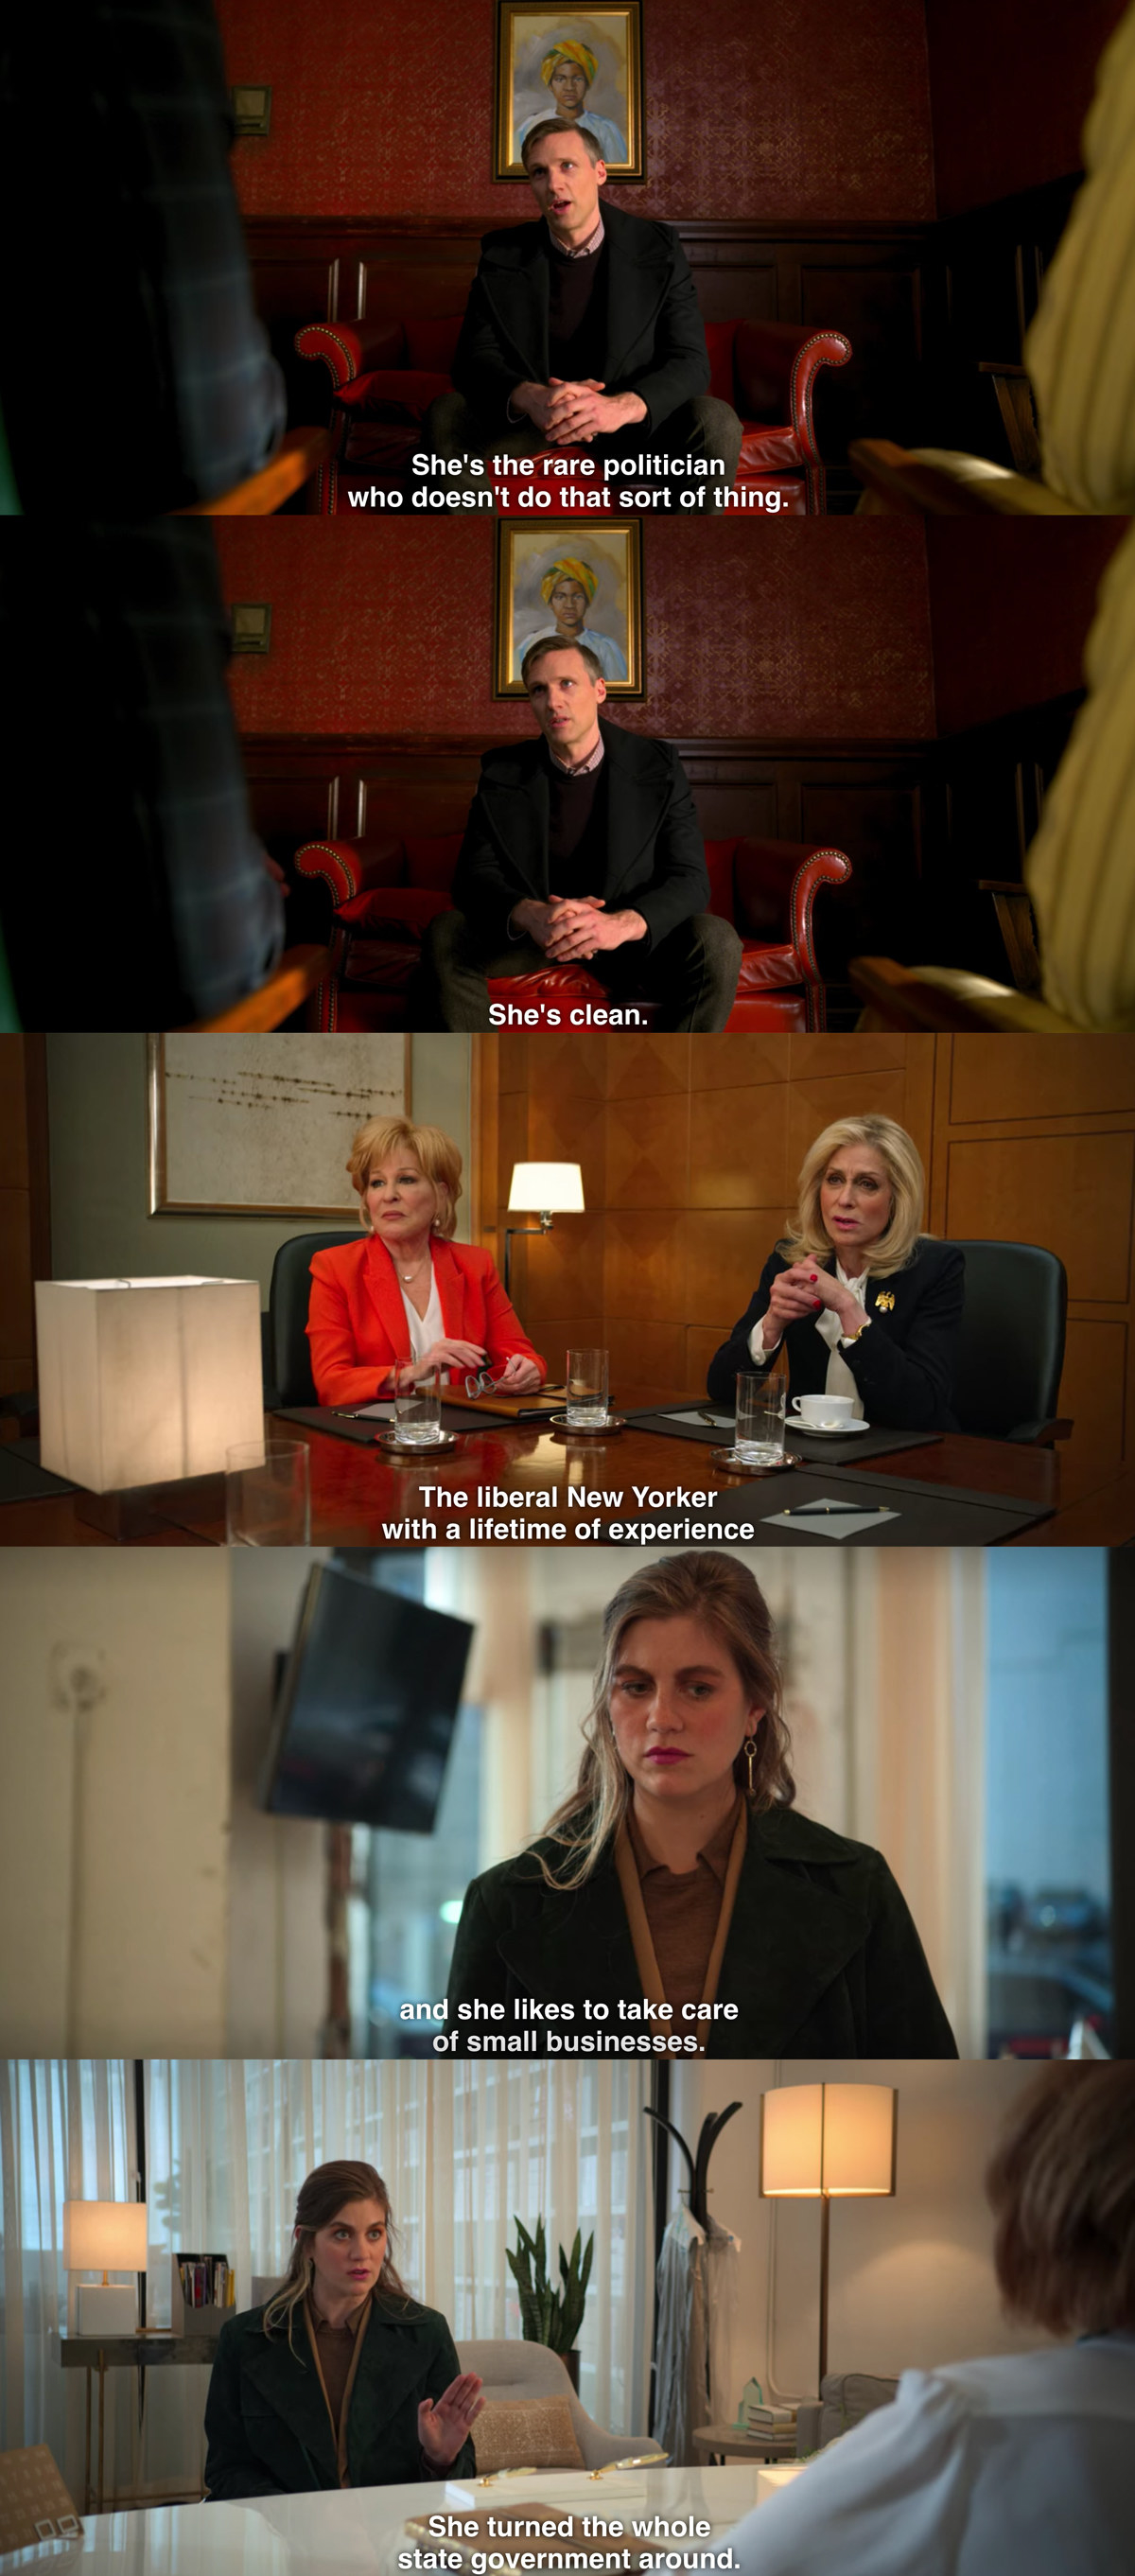 A split image from The Politician showing three characters each praising Dede Standish saying things like she's not a corrupt politician, she's clean, and she's a liberal new yorker with a lifetime of experience and she takes care of small businesses